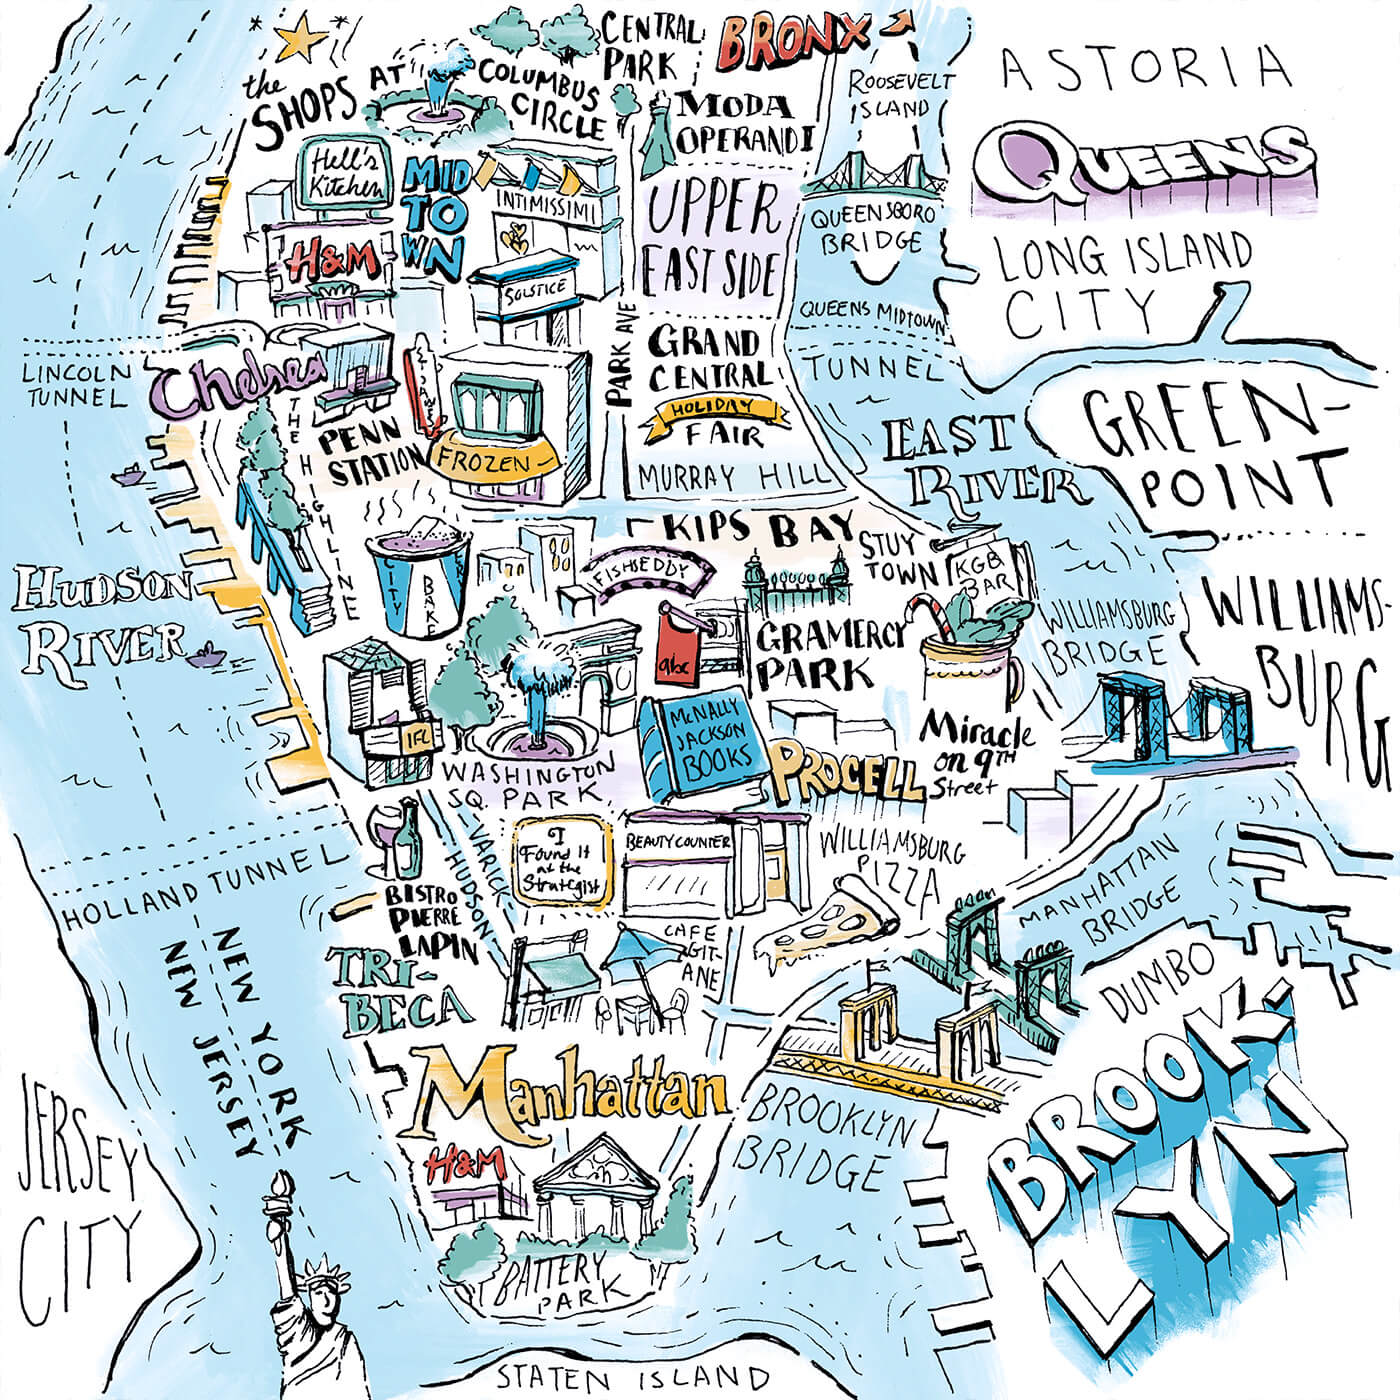 New York Magazine, Holiday Maps - Interactive, hand-drawn maps that follow seven of New York's friends and staff around the city as they share their favorite holiday destinations and shops to celebrate the season.IllustrationView Project →